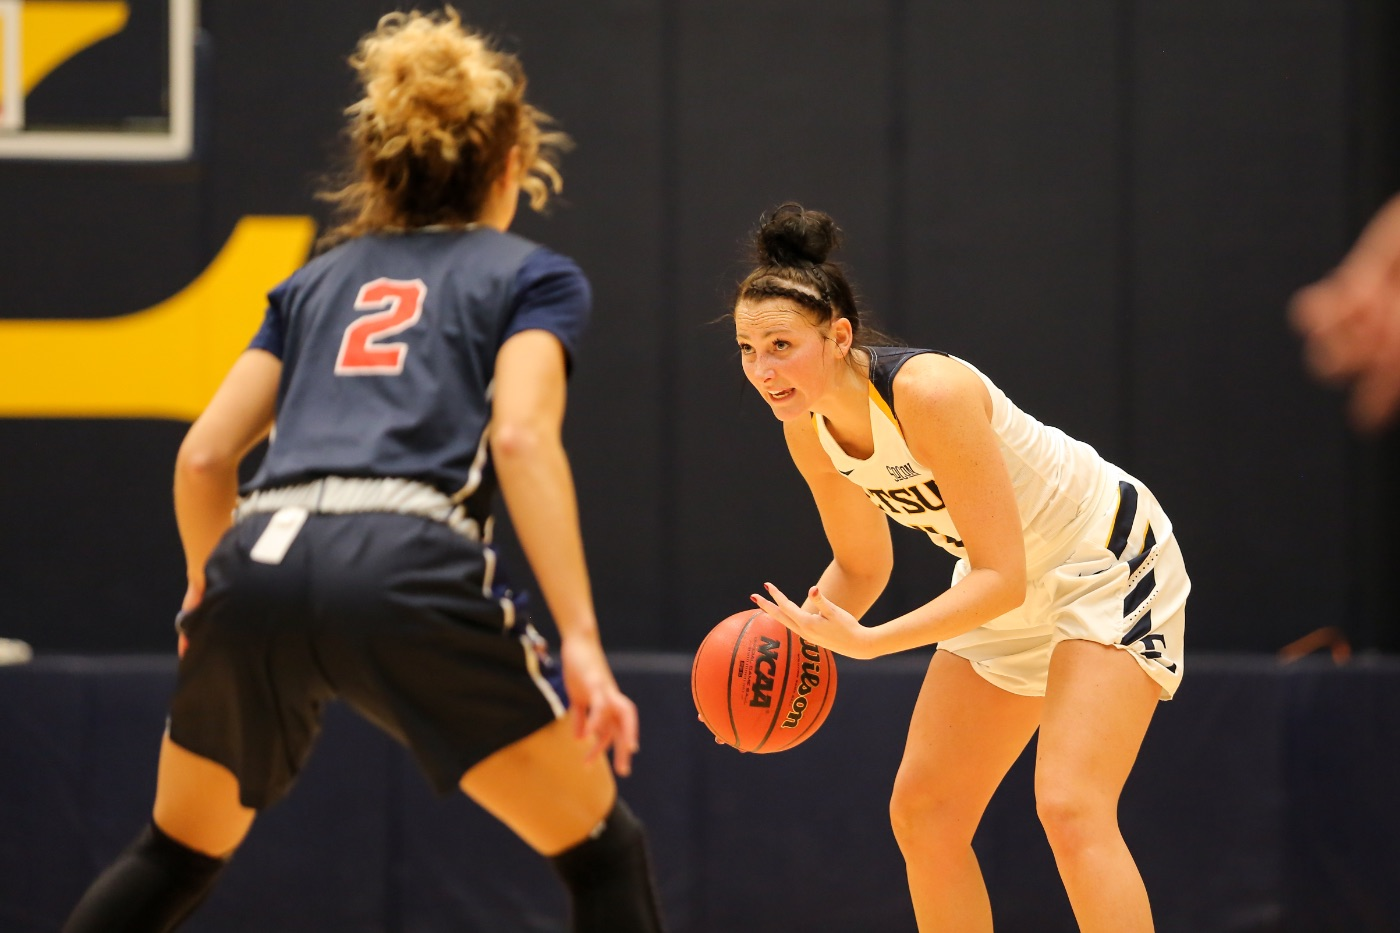 Bucs fall in final seconds at UNC Asheville, 56-55